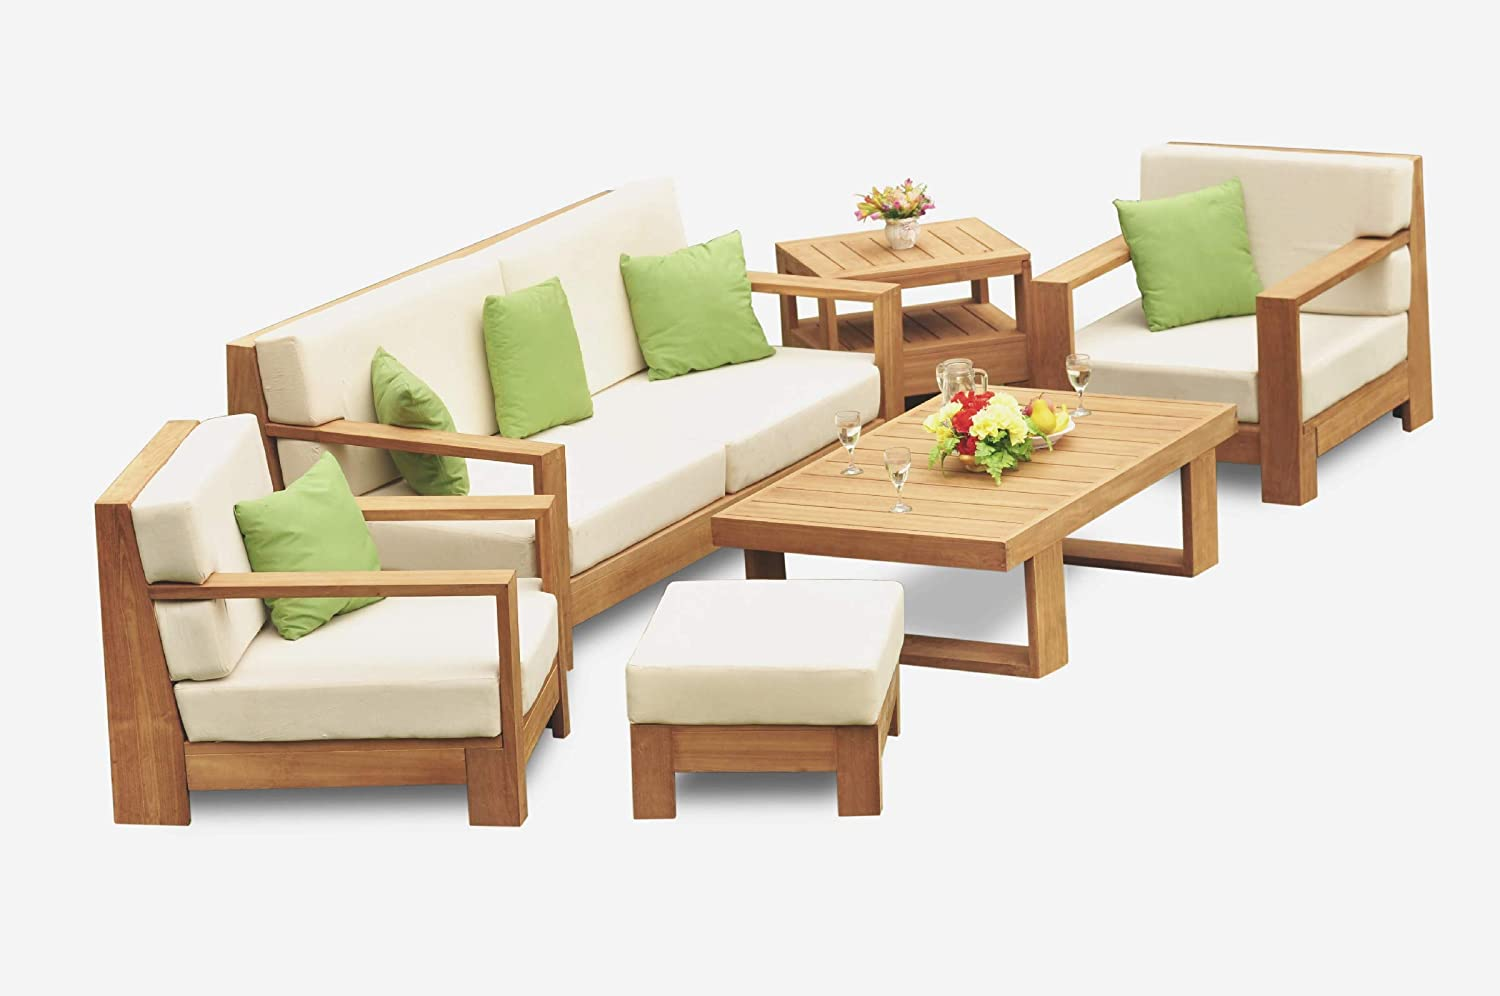 Amazon Com Grade A Teak Wood Canberra 6 Pcs Sofa Set 1 Sofa 3 Seater 2 Lounge Chairs 1 Ottoman 1 Coffee Table 1 Side Table Furniture Only 12cn6 Garden Outdoor